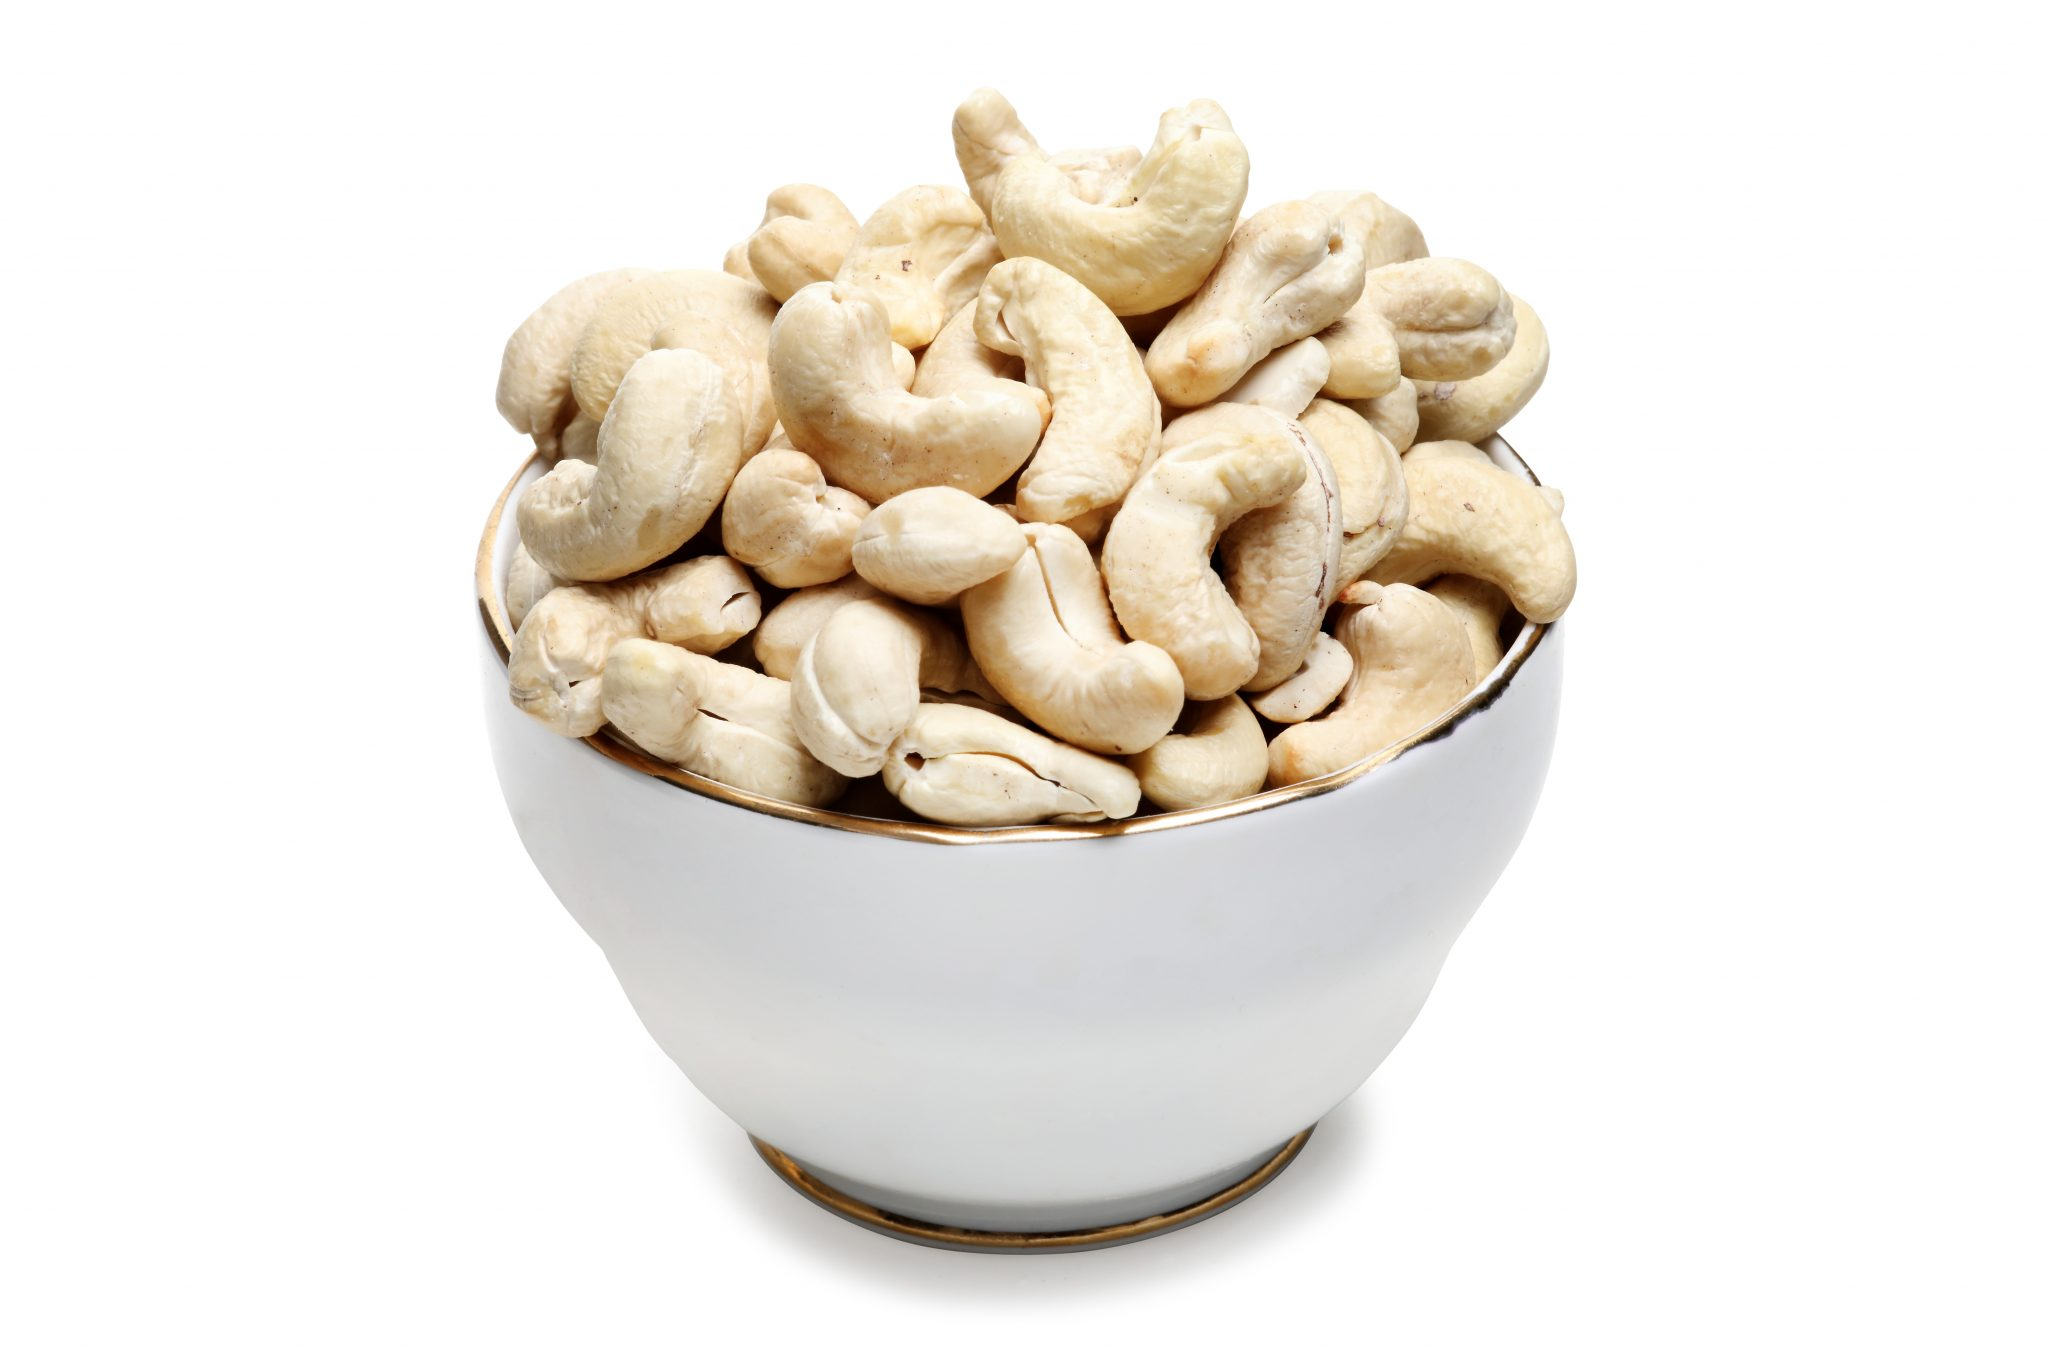 Chandras healthy vegetarian snack cashews in a bowl